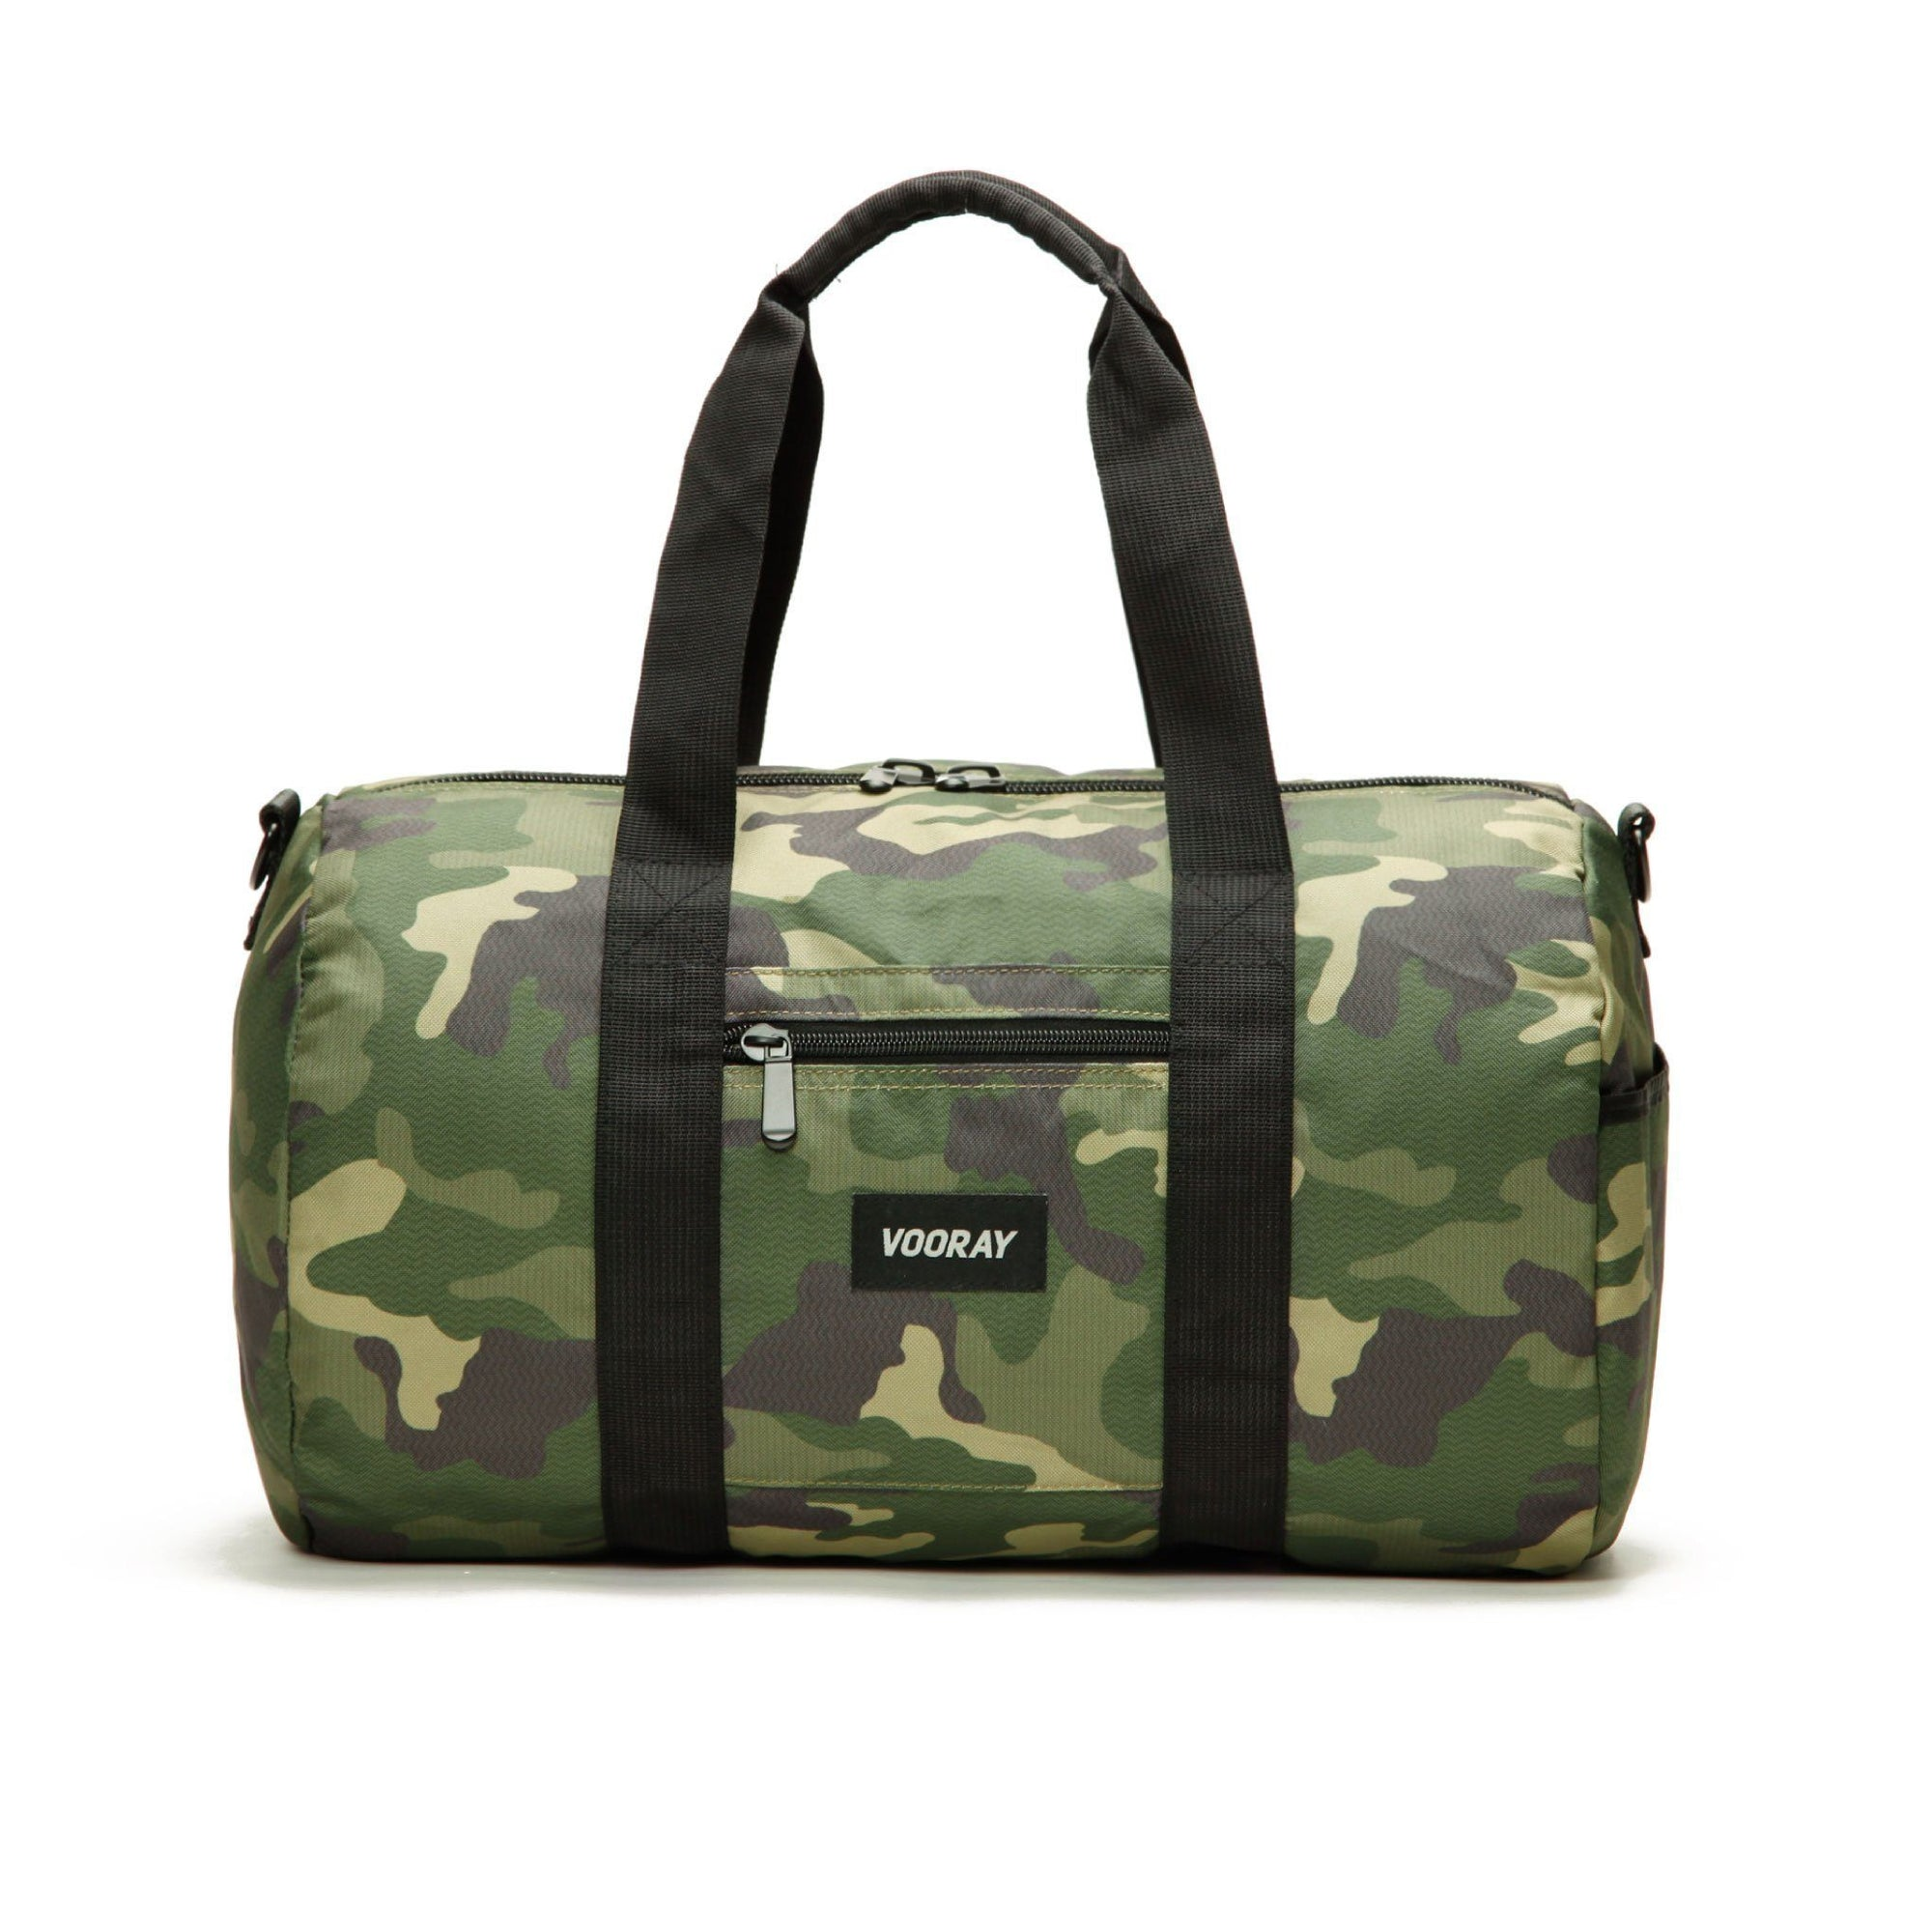 Vooray Roadie Duffel Bag - Green Camo